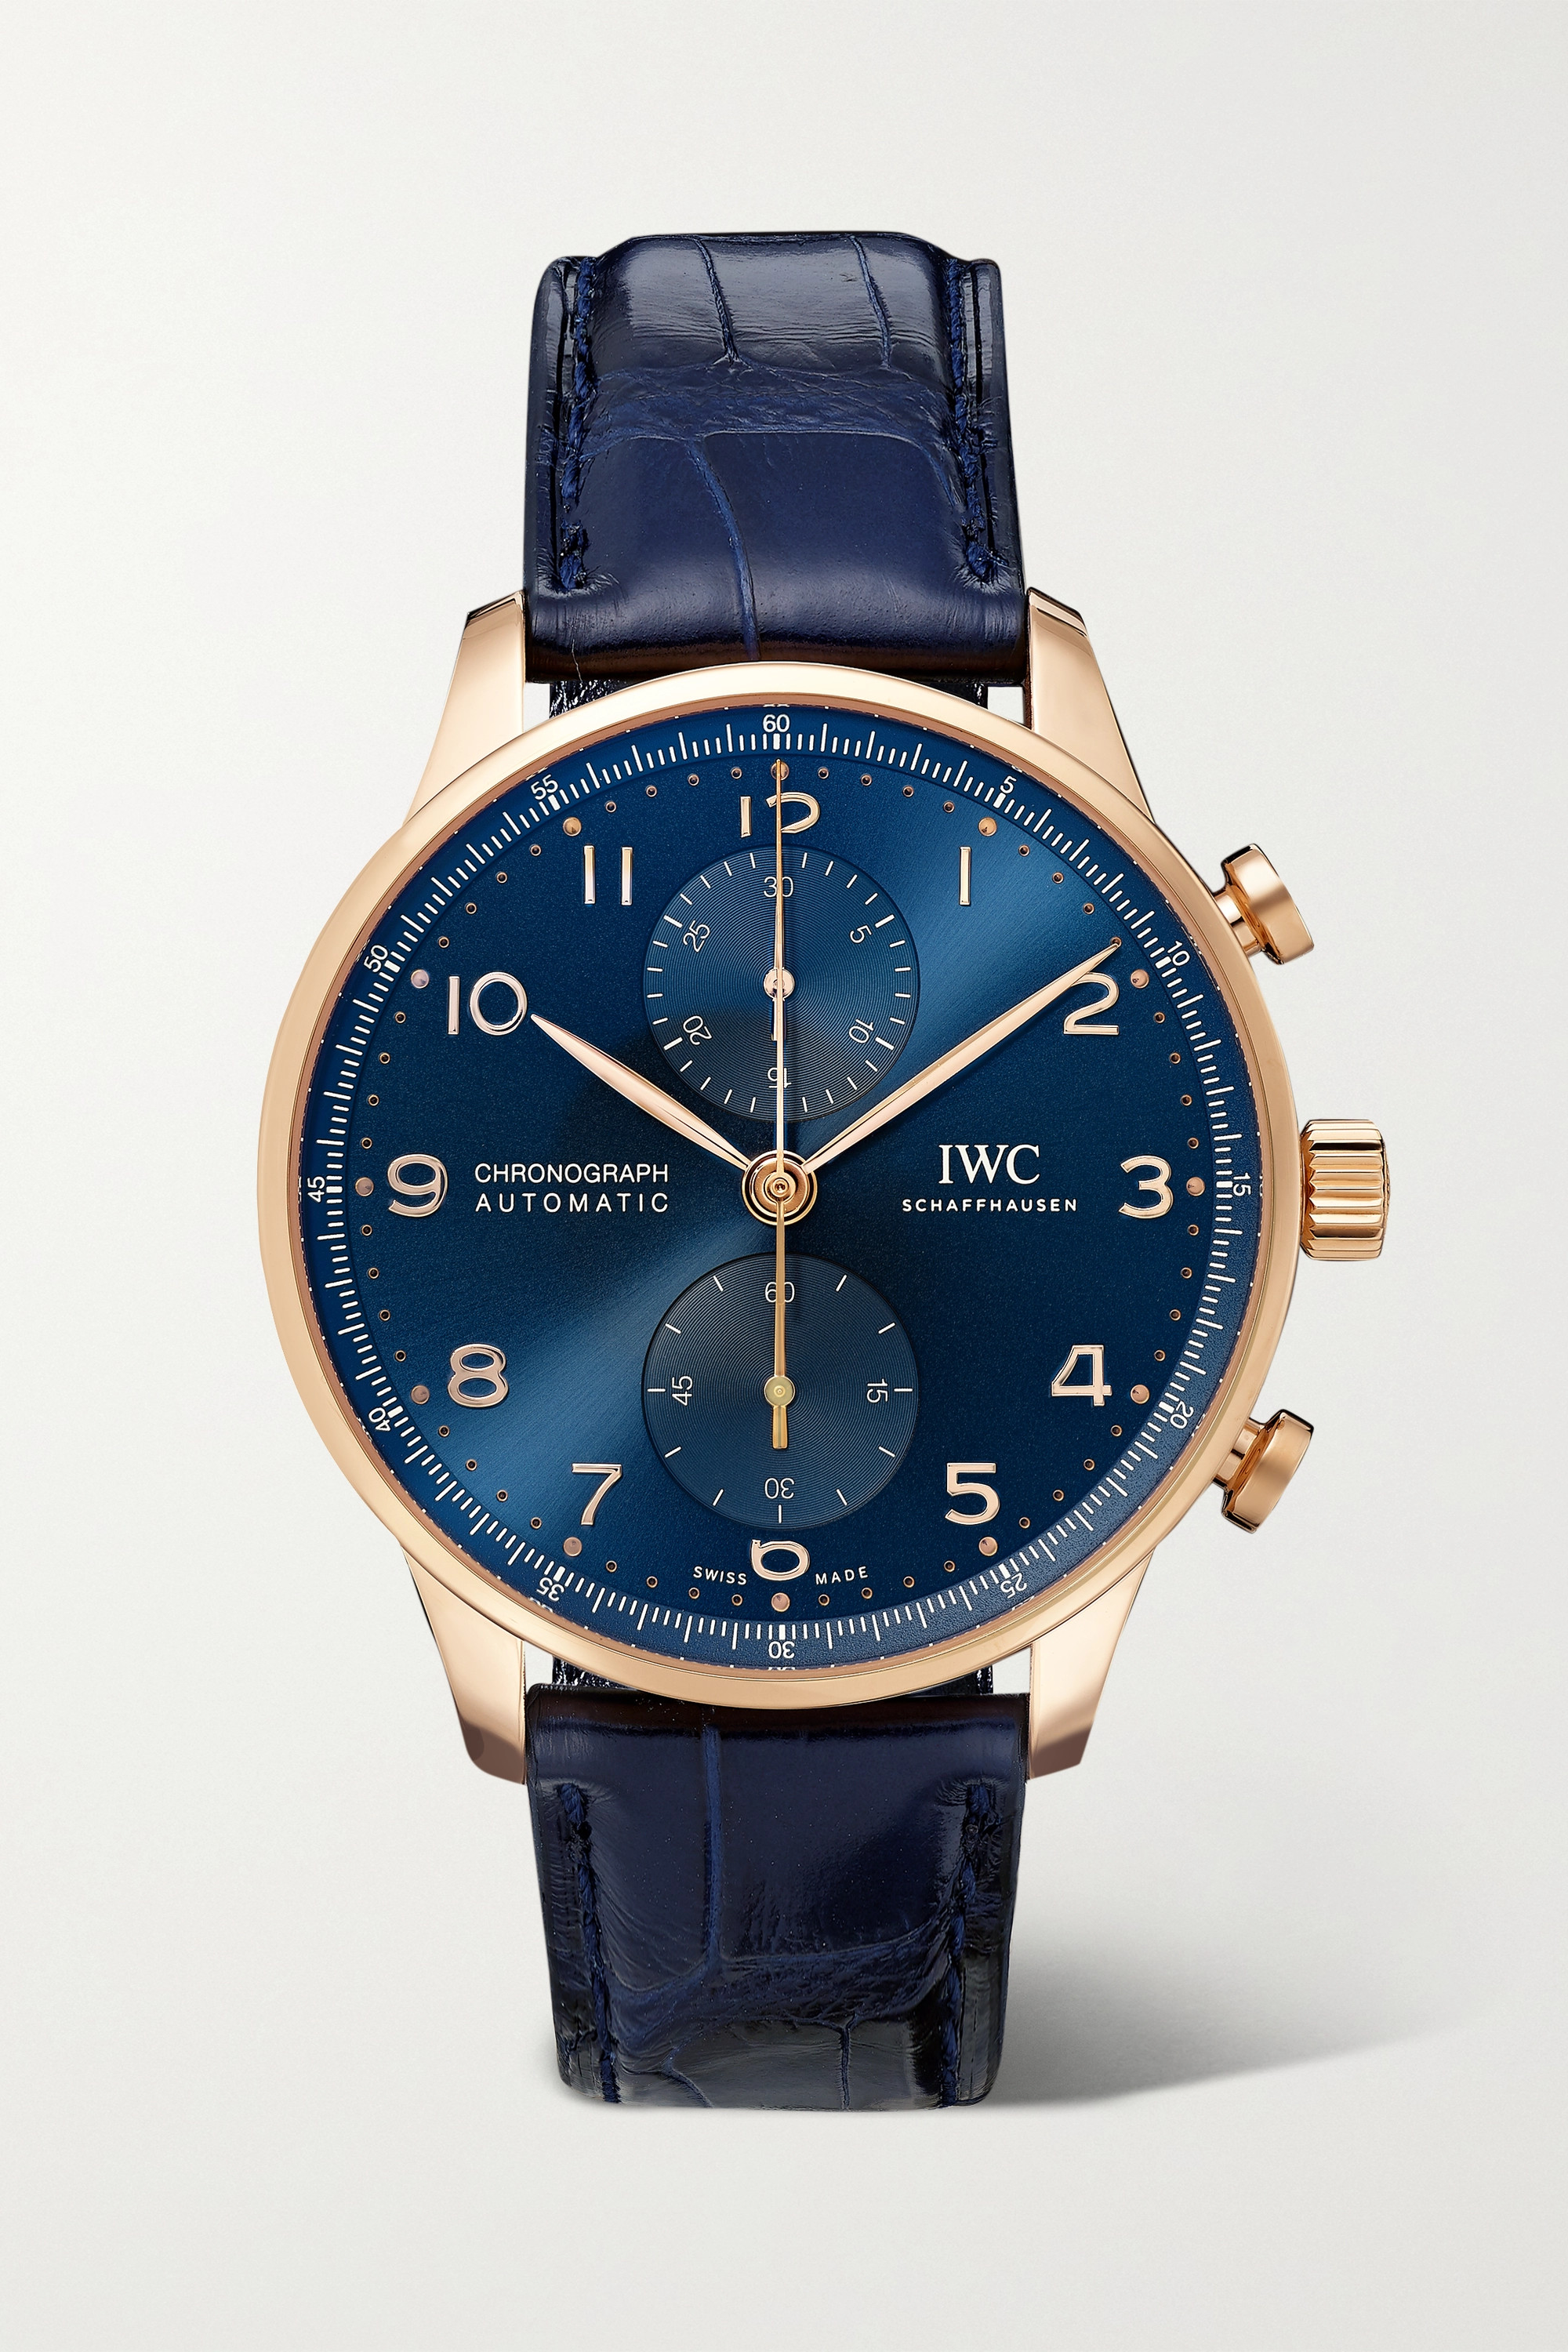 IWC SCHAFFHAUSEN Portugieser Automatic Chronograph Boutique Edition 41mm 18-karat red gold and alligator watch